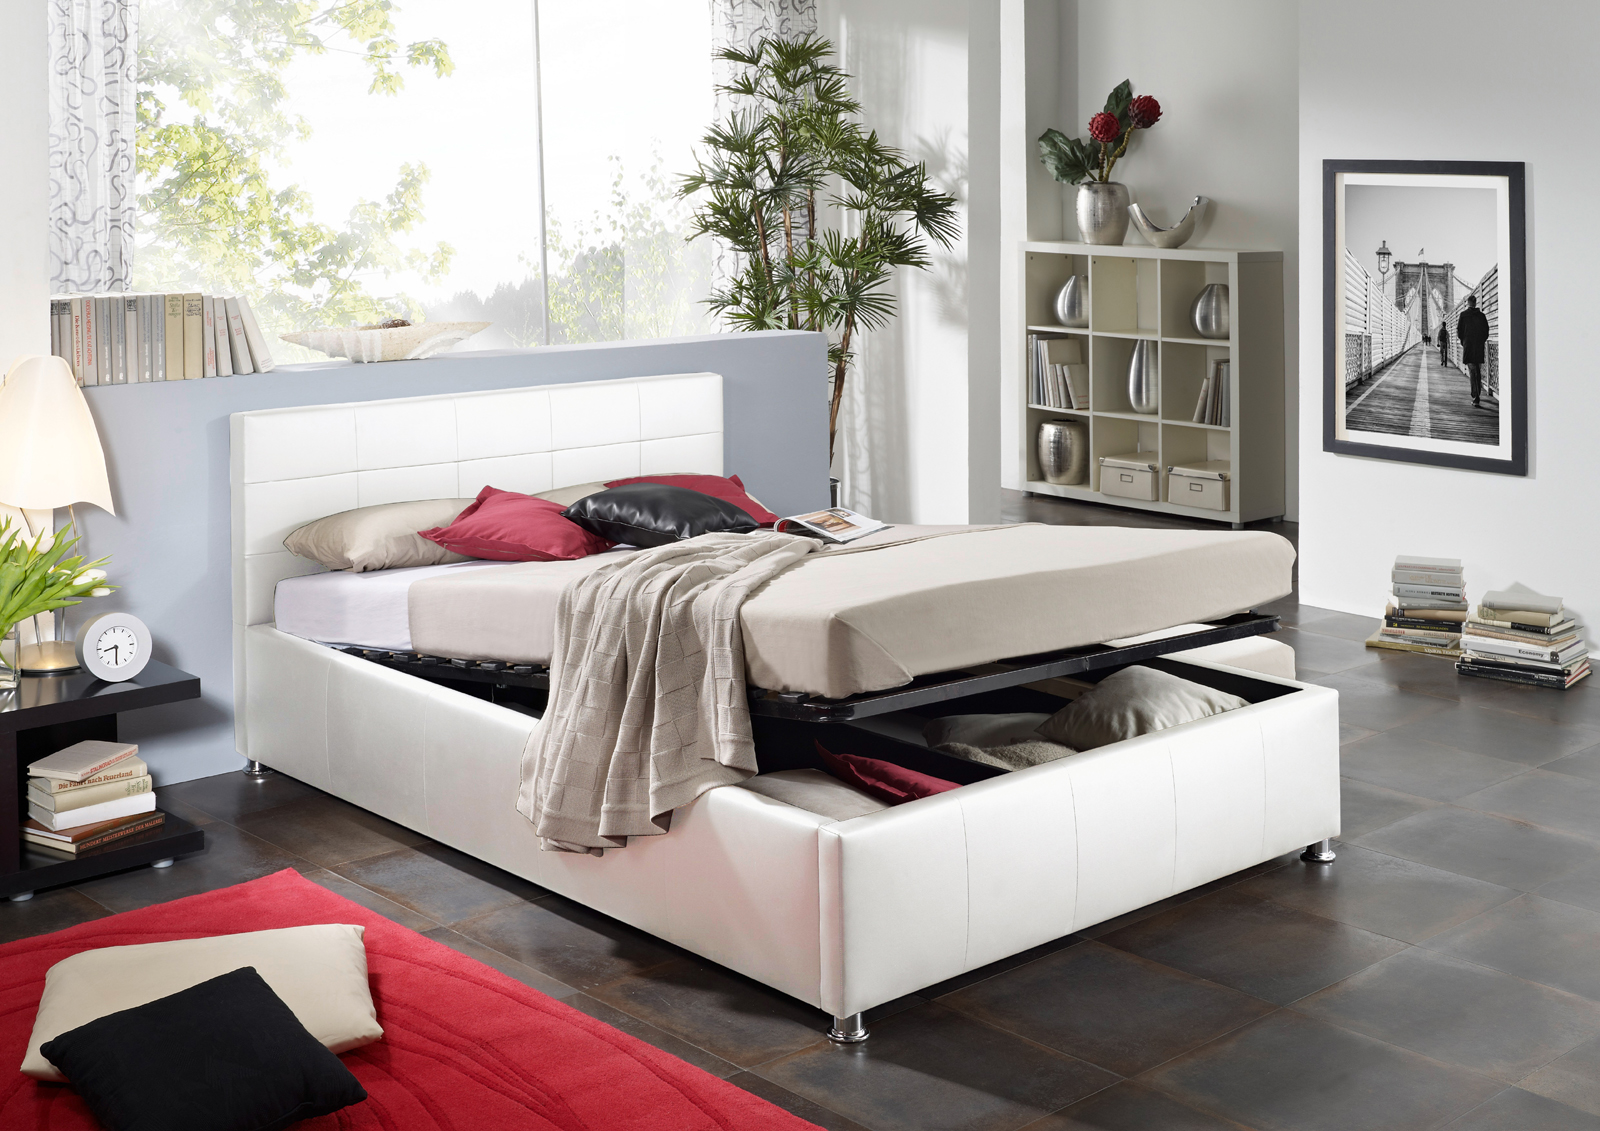 sam design bett 180 x 200 cm wei kira bettkasten. Black Bedroom Furniture Sets. Home Design Ideas